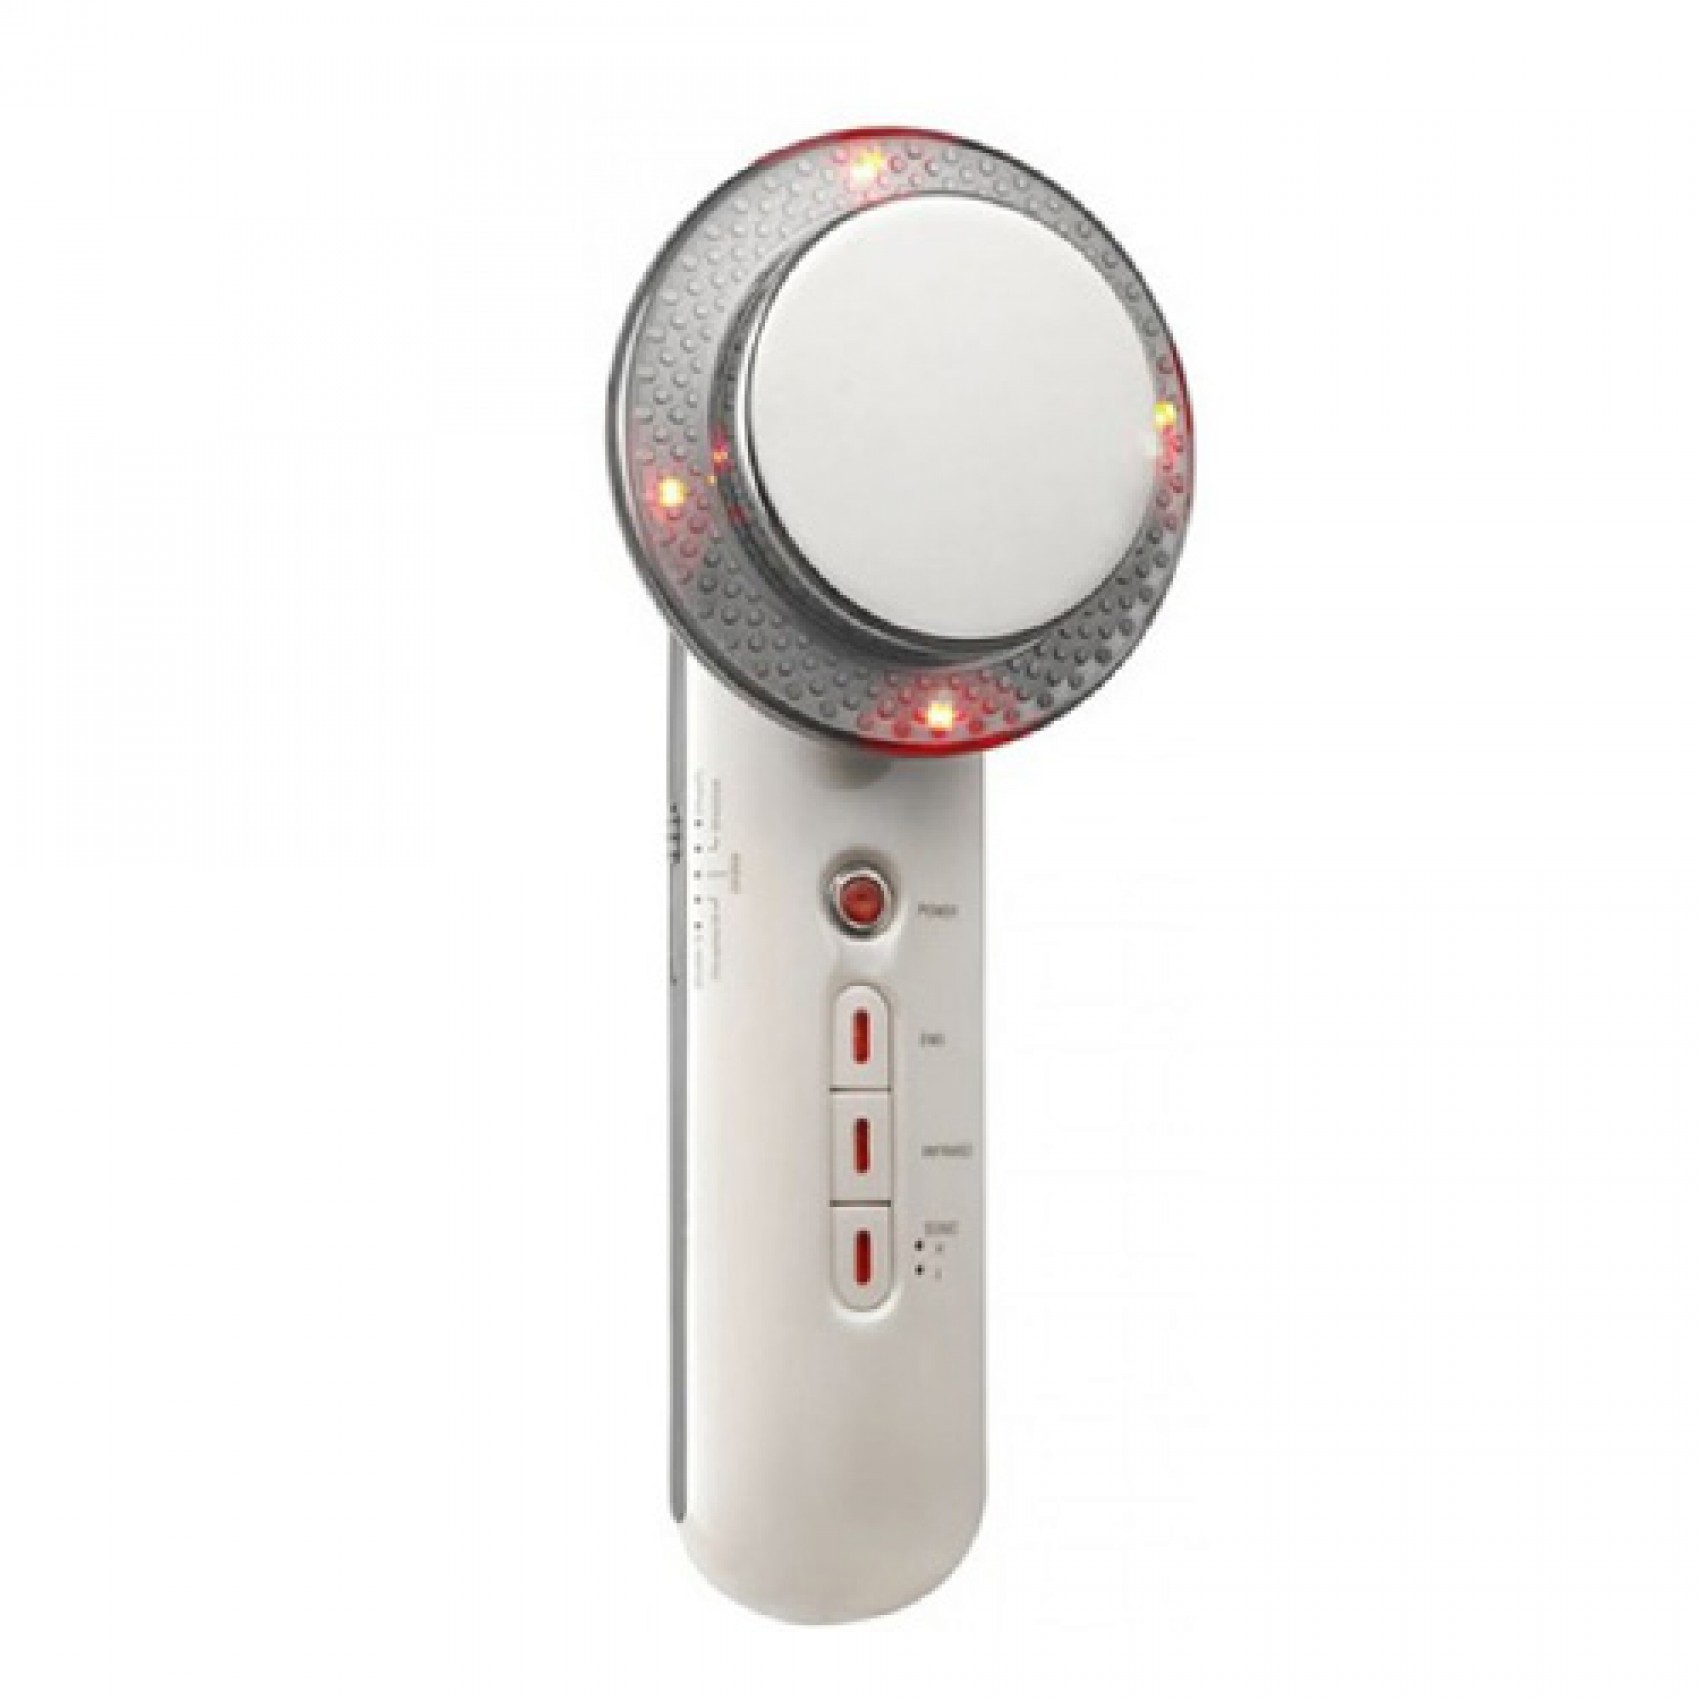 EMS Infrared and Ultrasonic Slimming Device - White